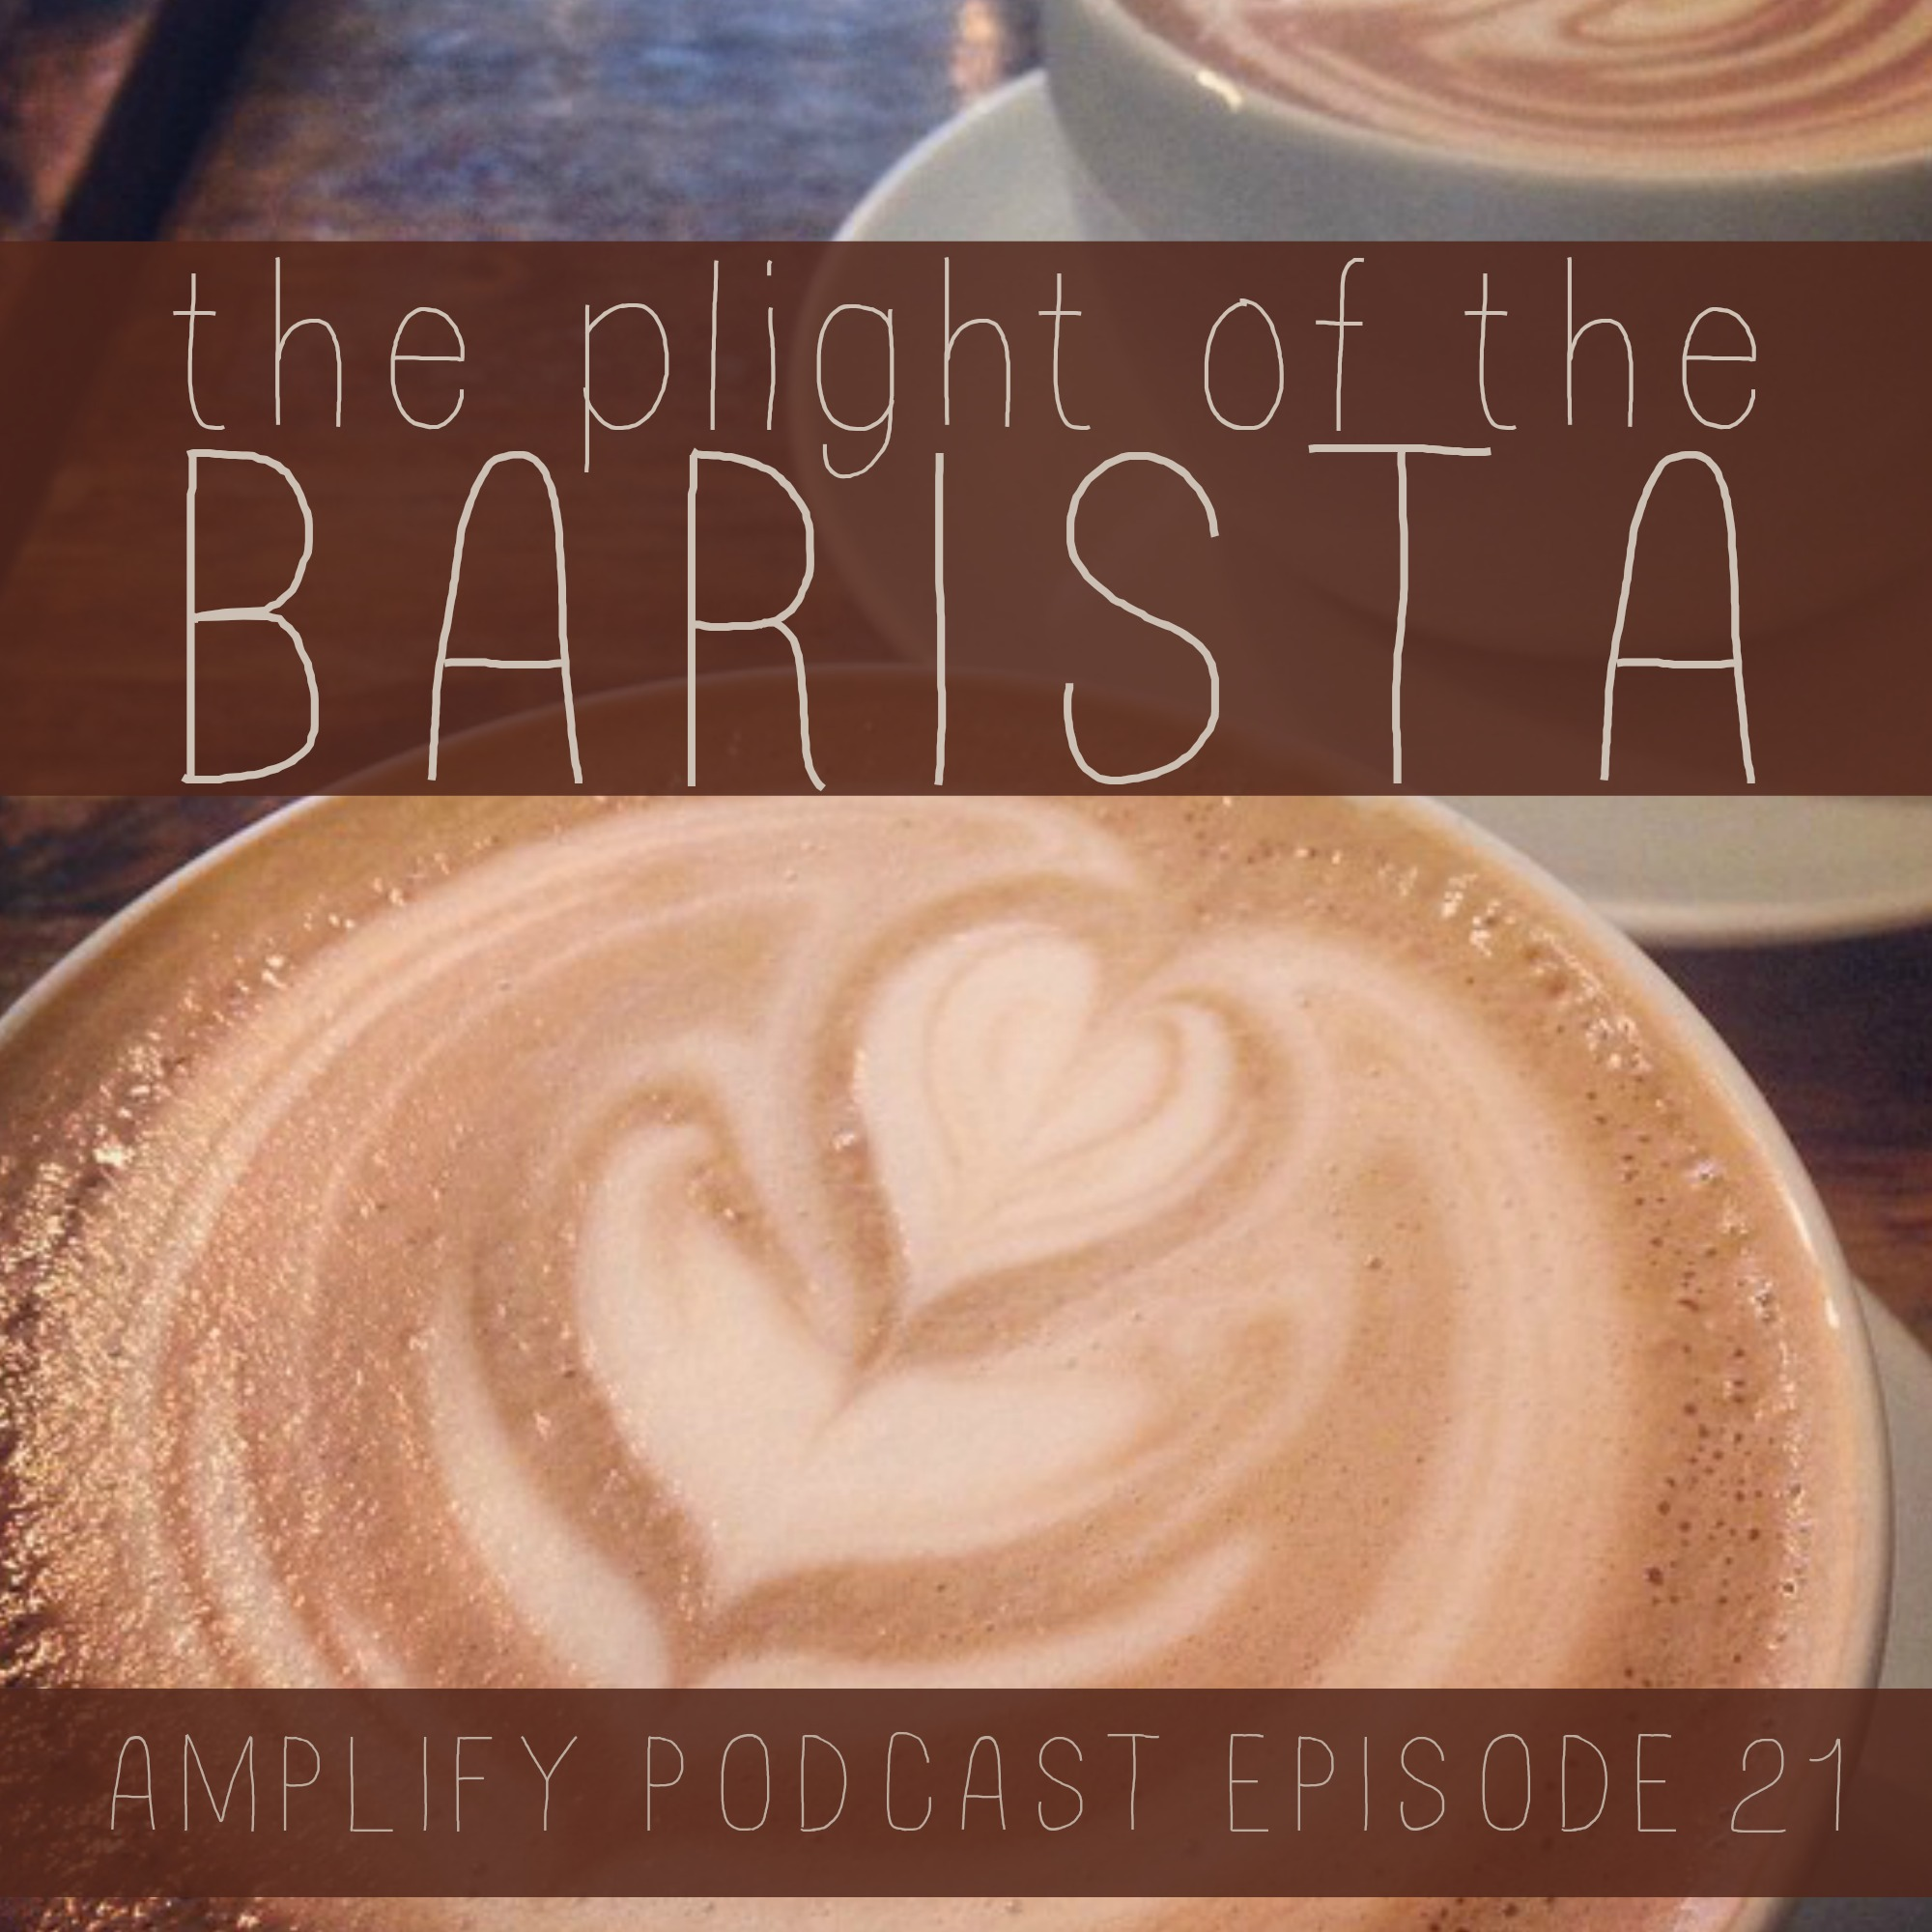 The Plight of the Barista